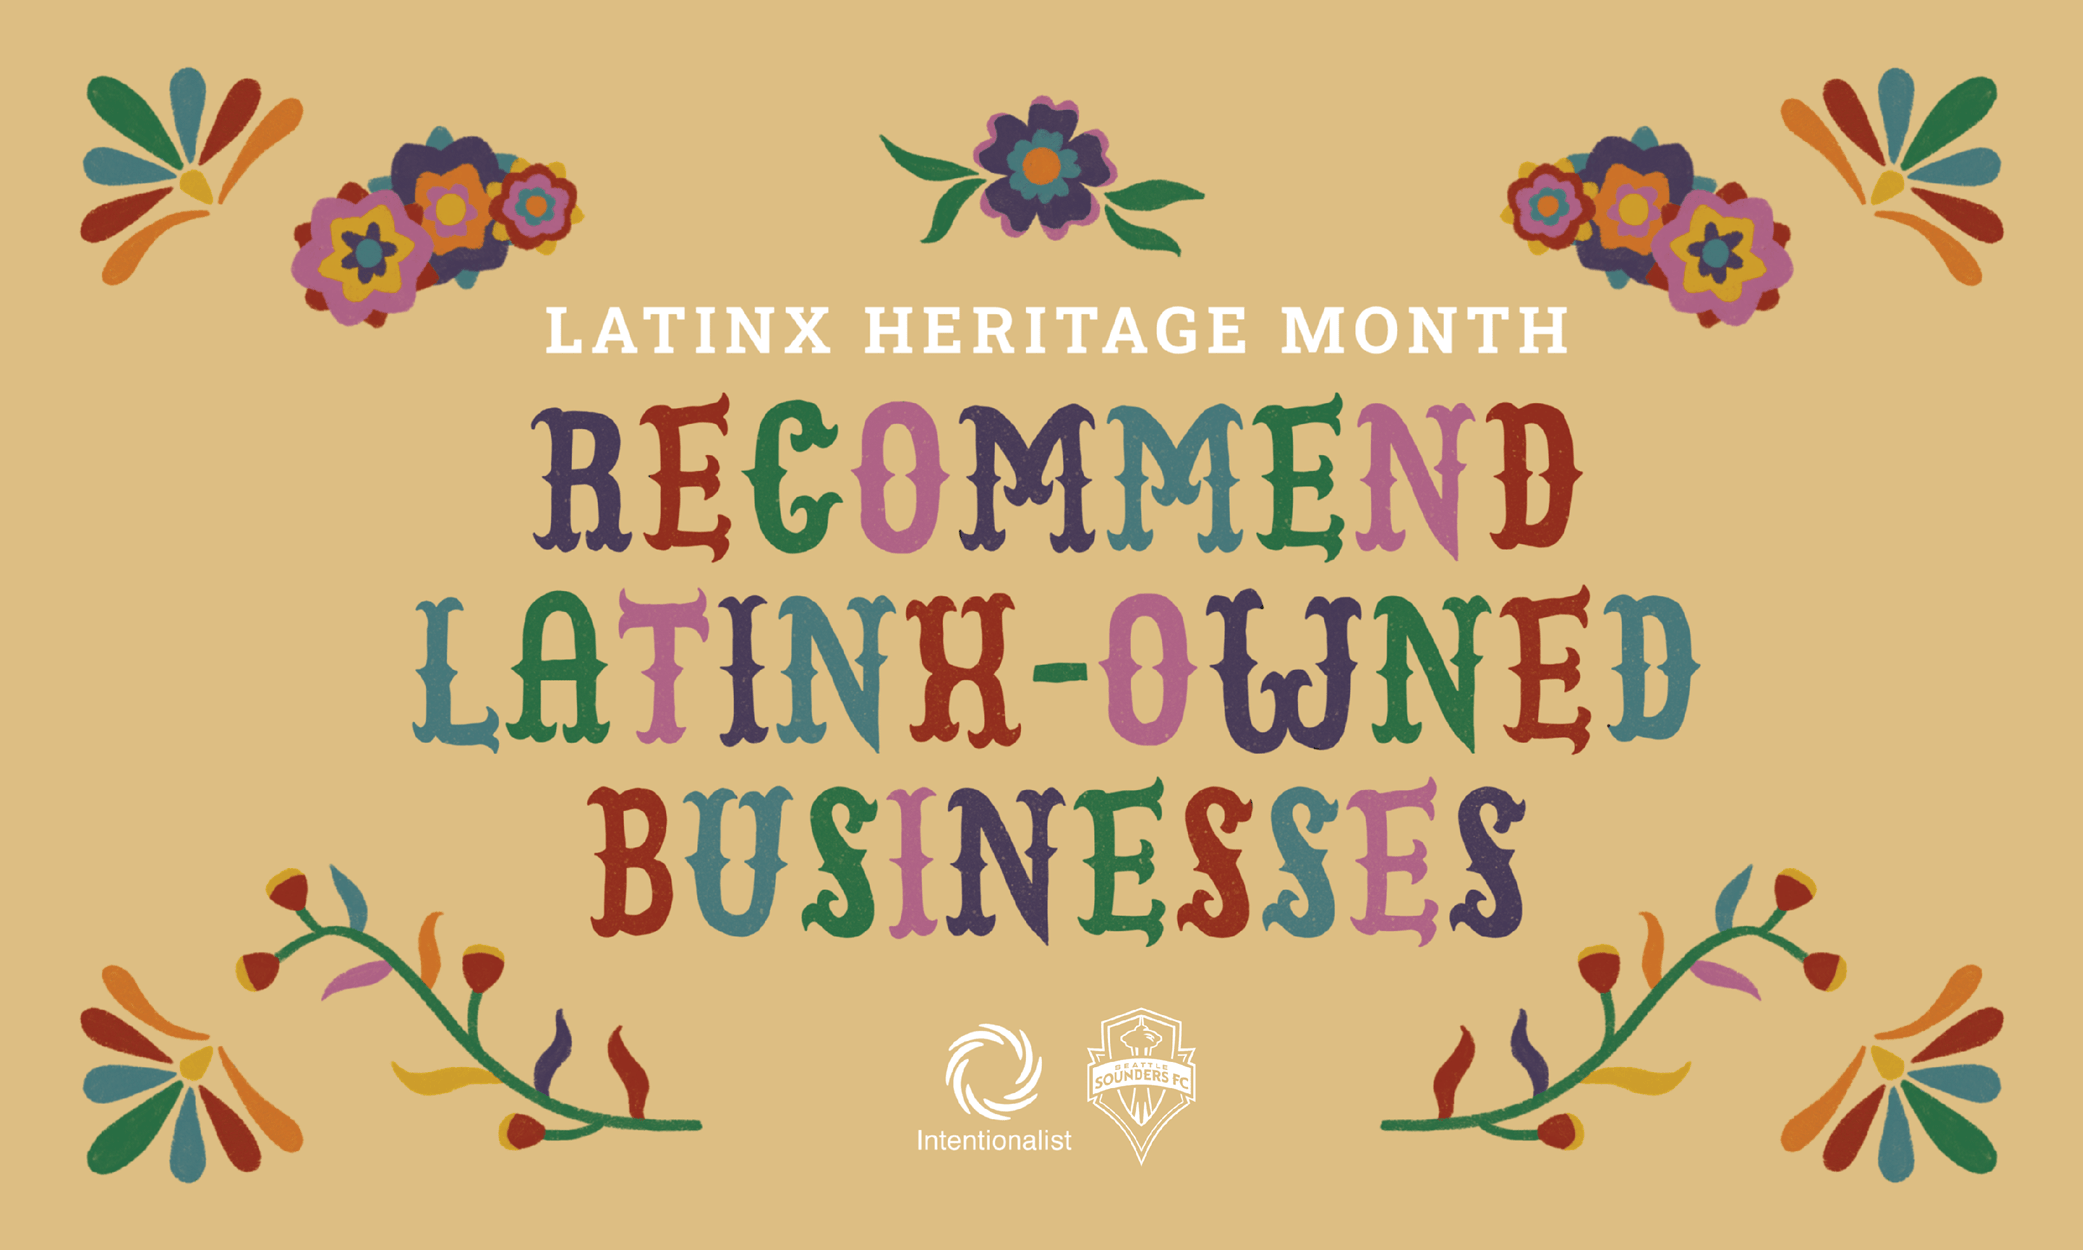 Recommend Latinx-owned businesses